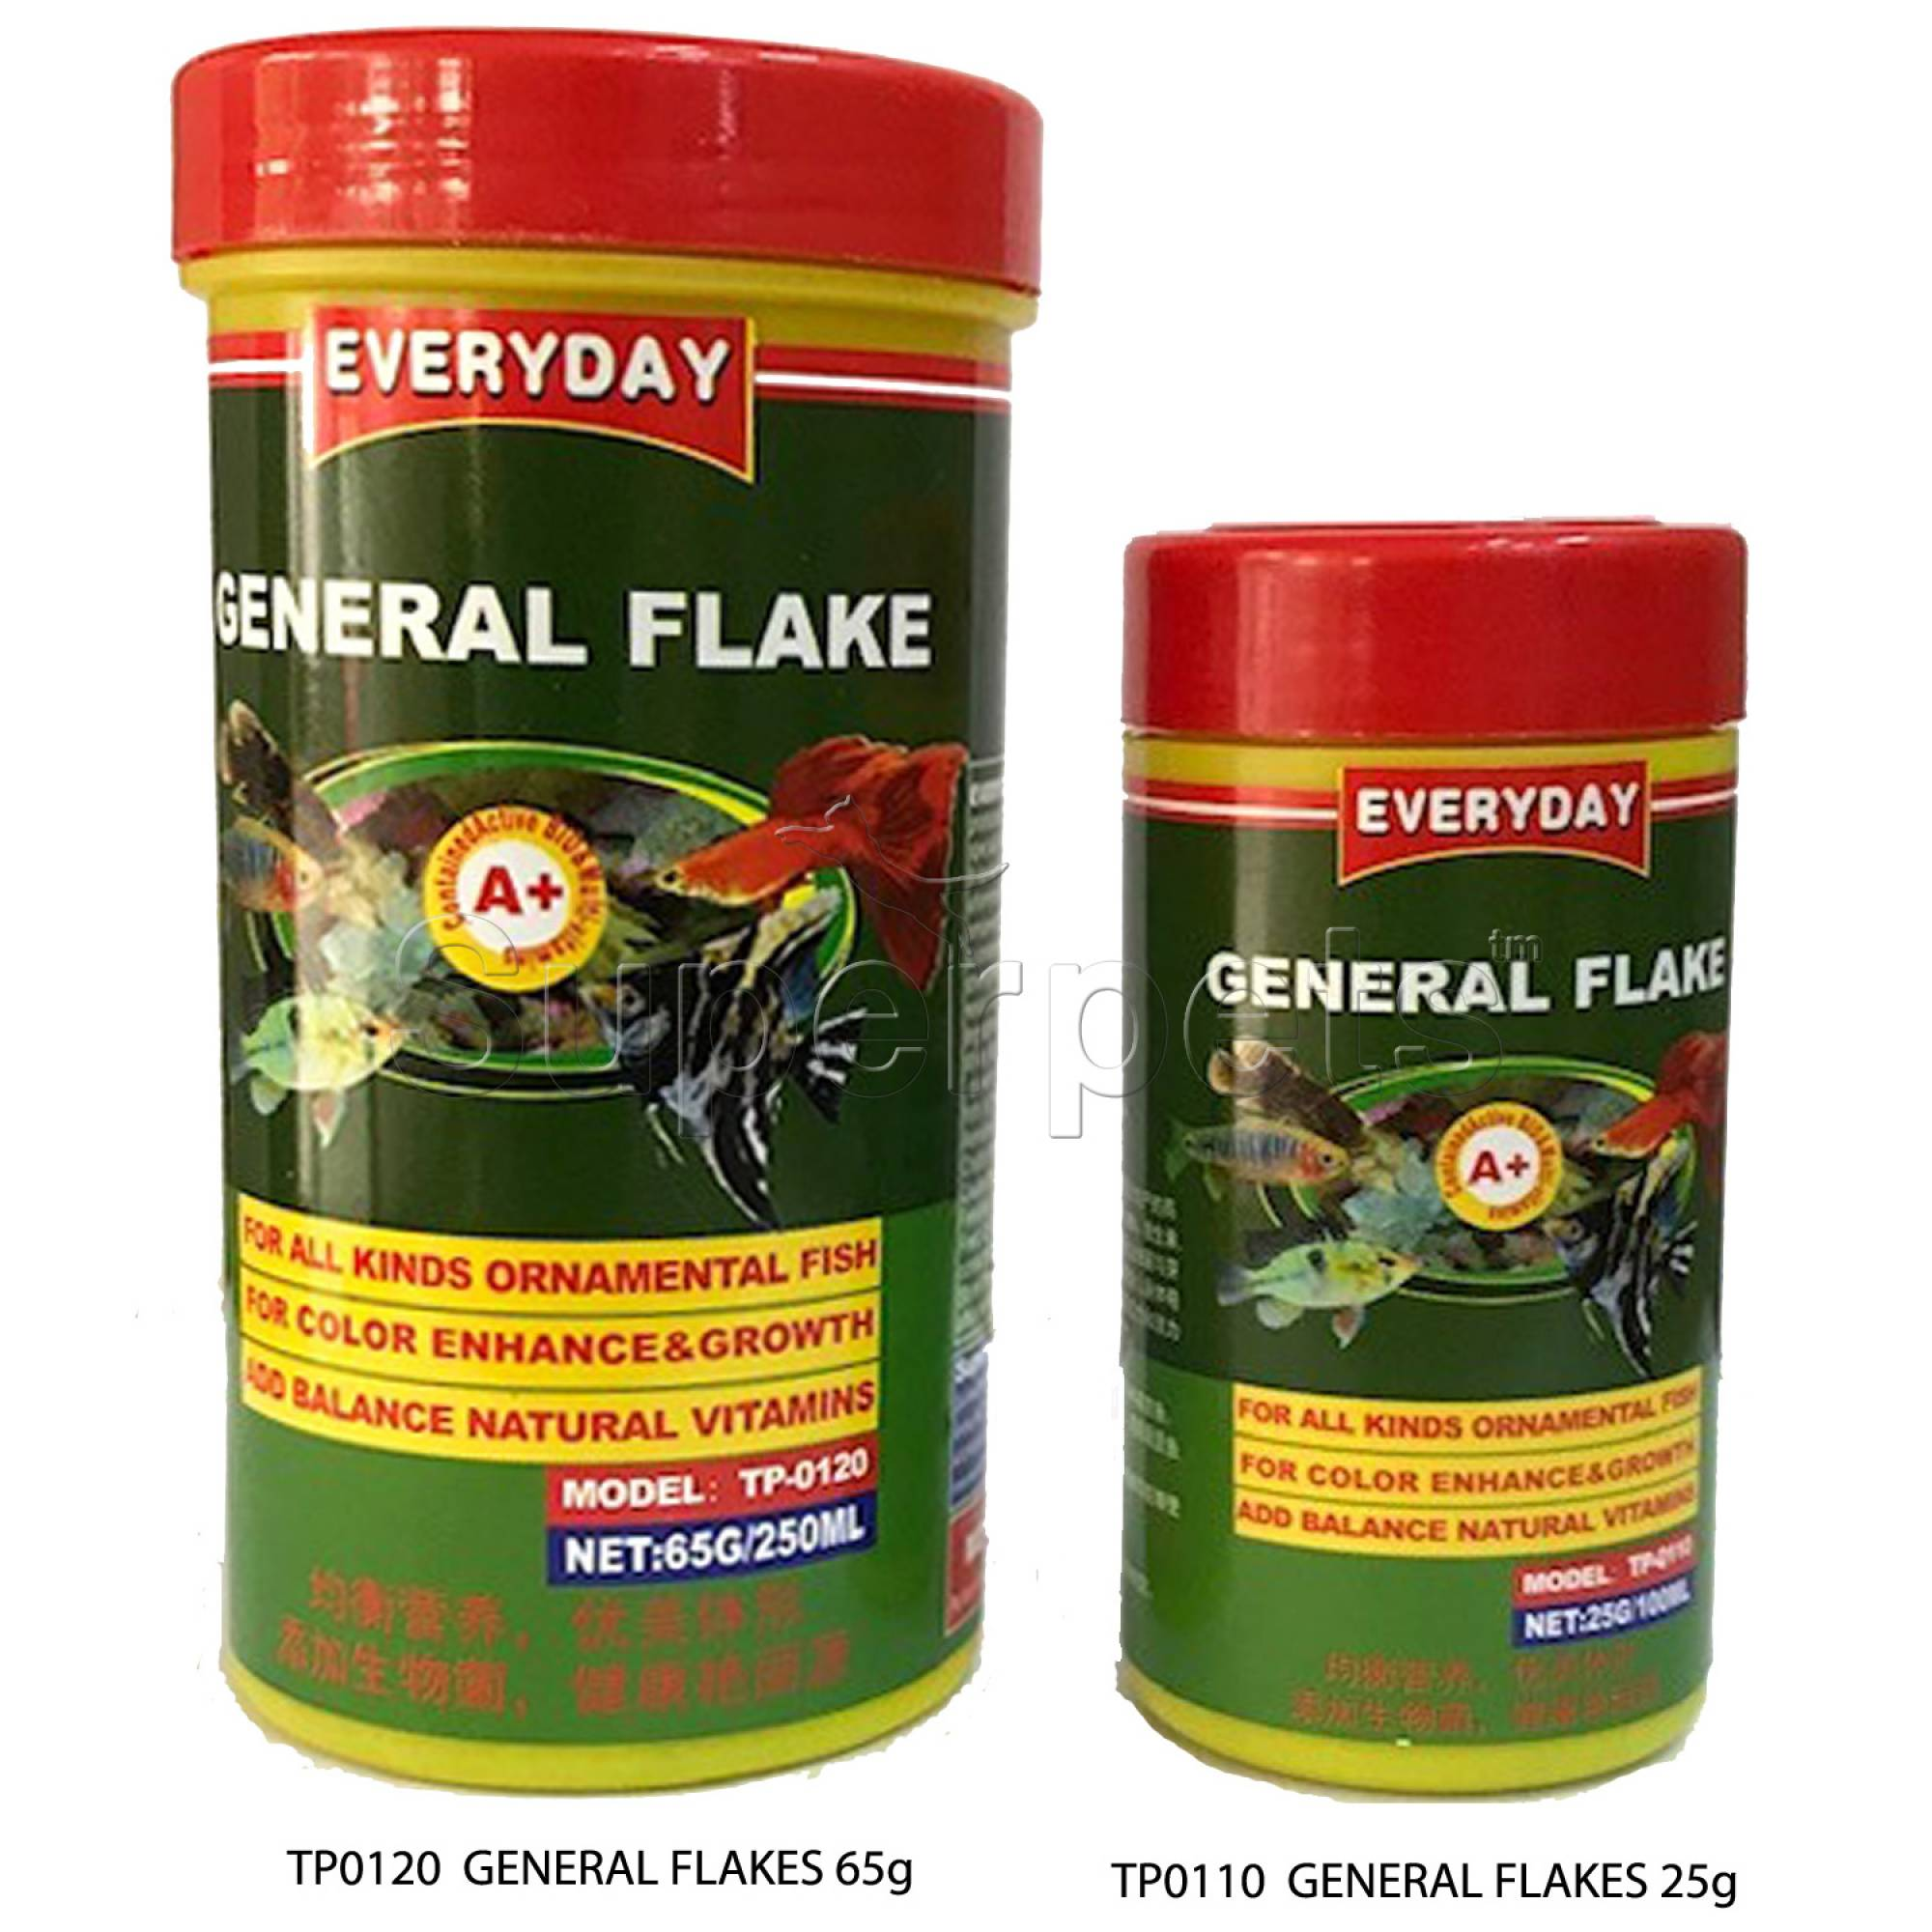 Everyday General Flakes Fish Food 65g (TP0120)